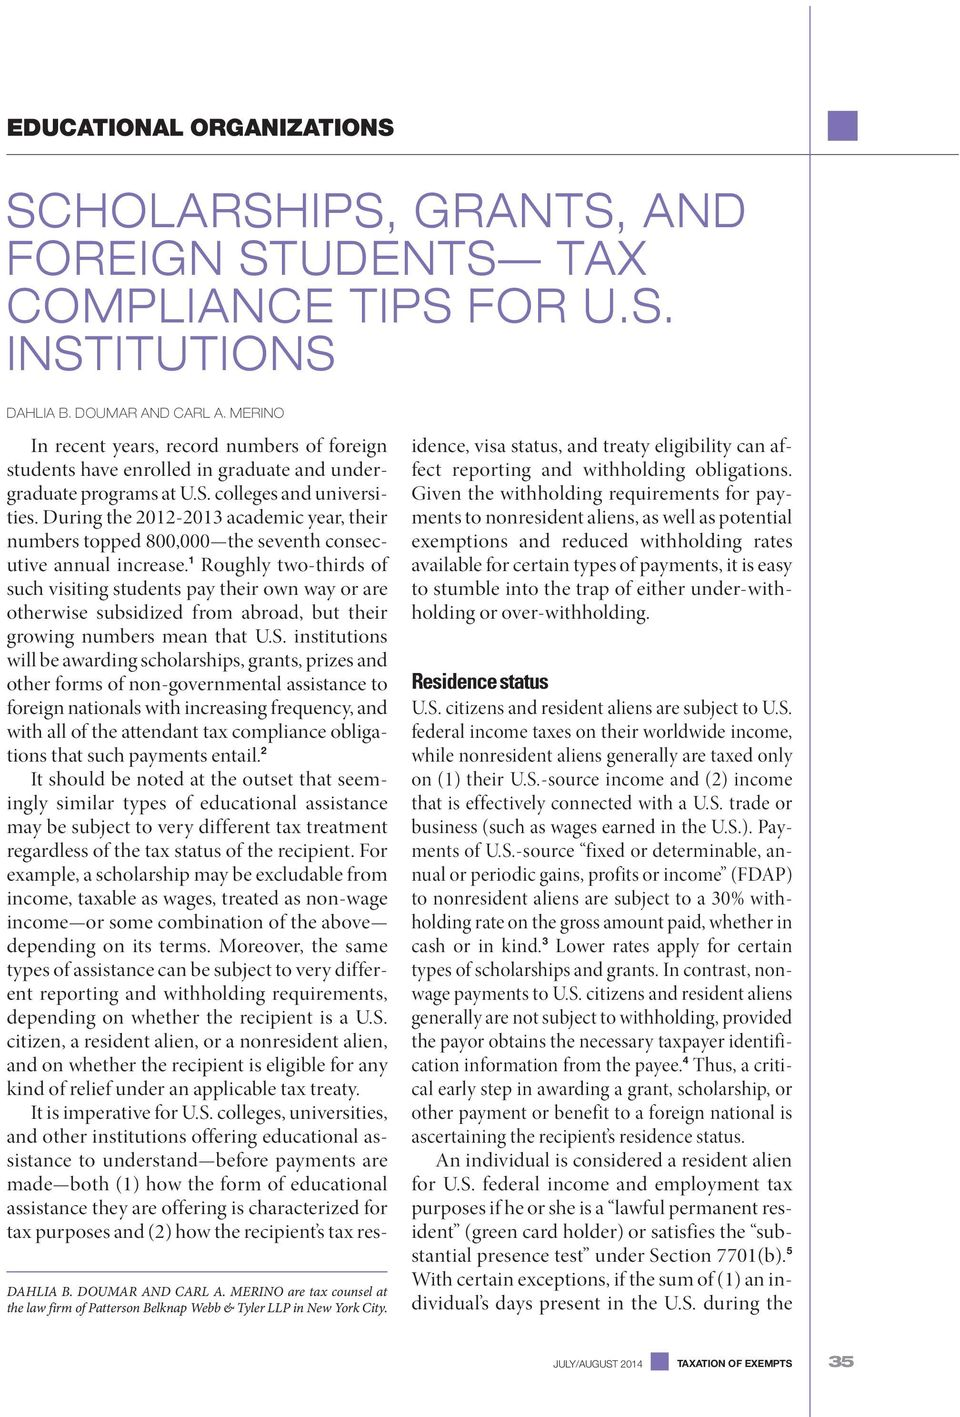 SCHOLARSHIPS, GRANTS, AND FOREIGN STUDENTS TAX COMPLIANCE